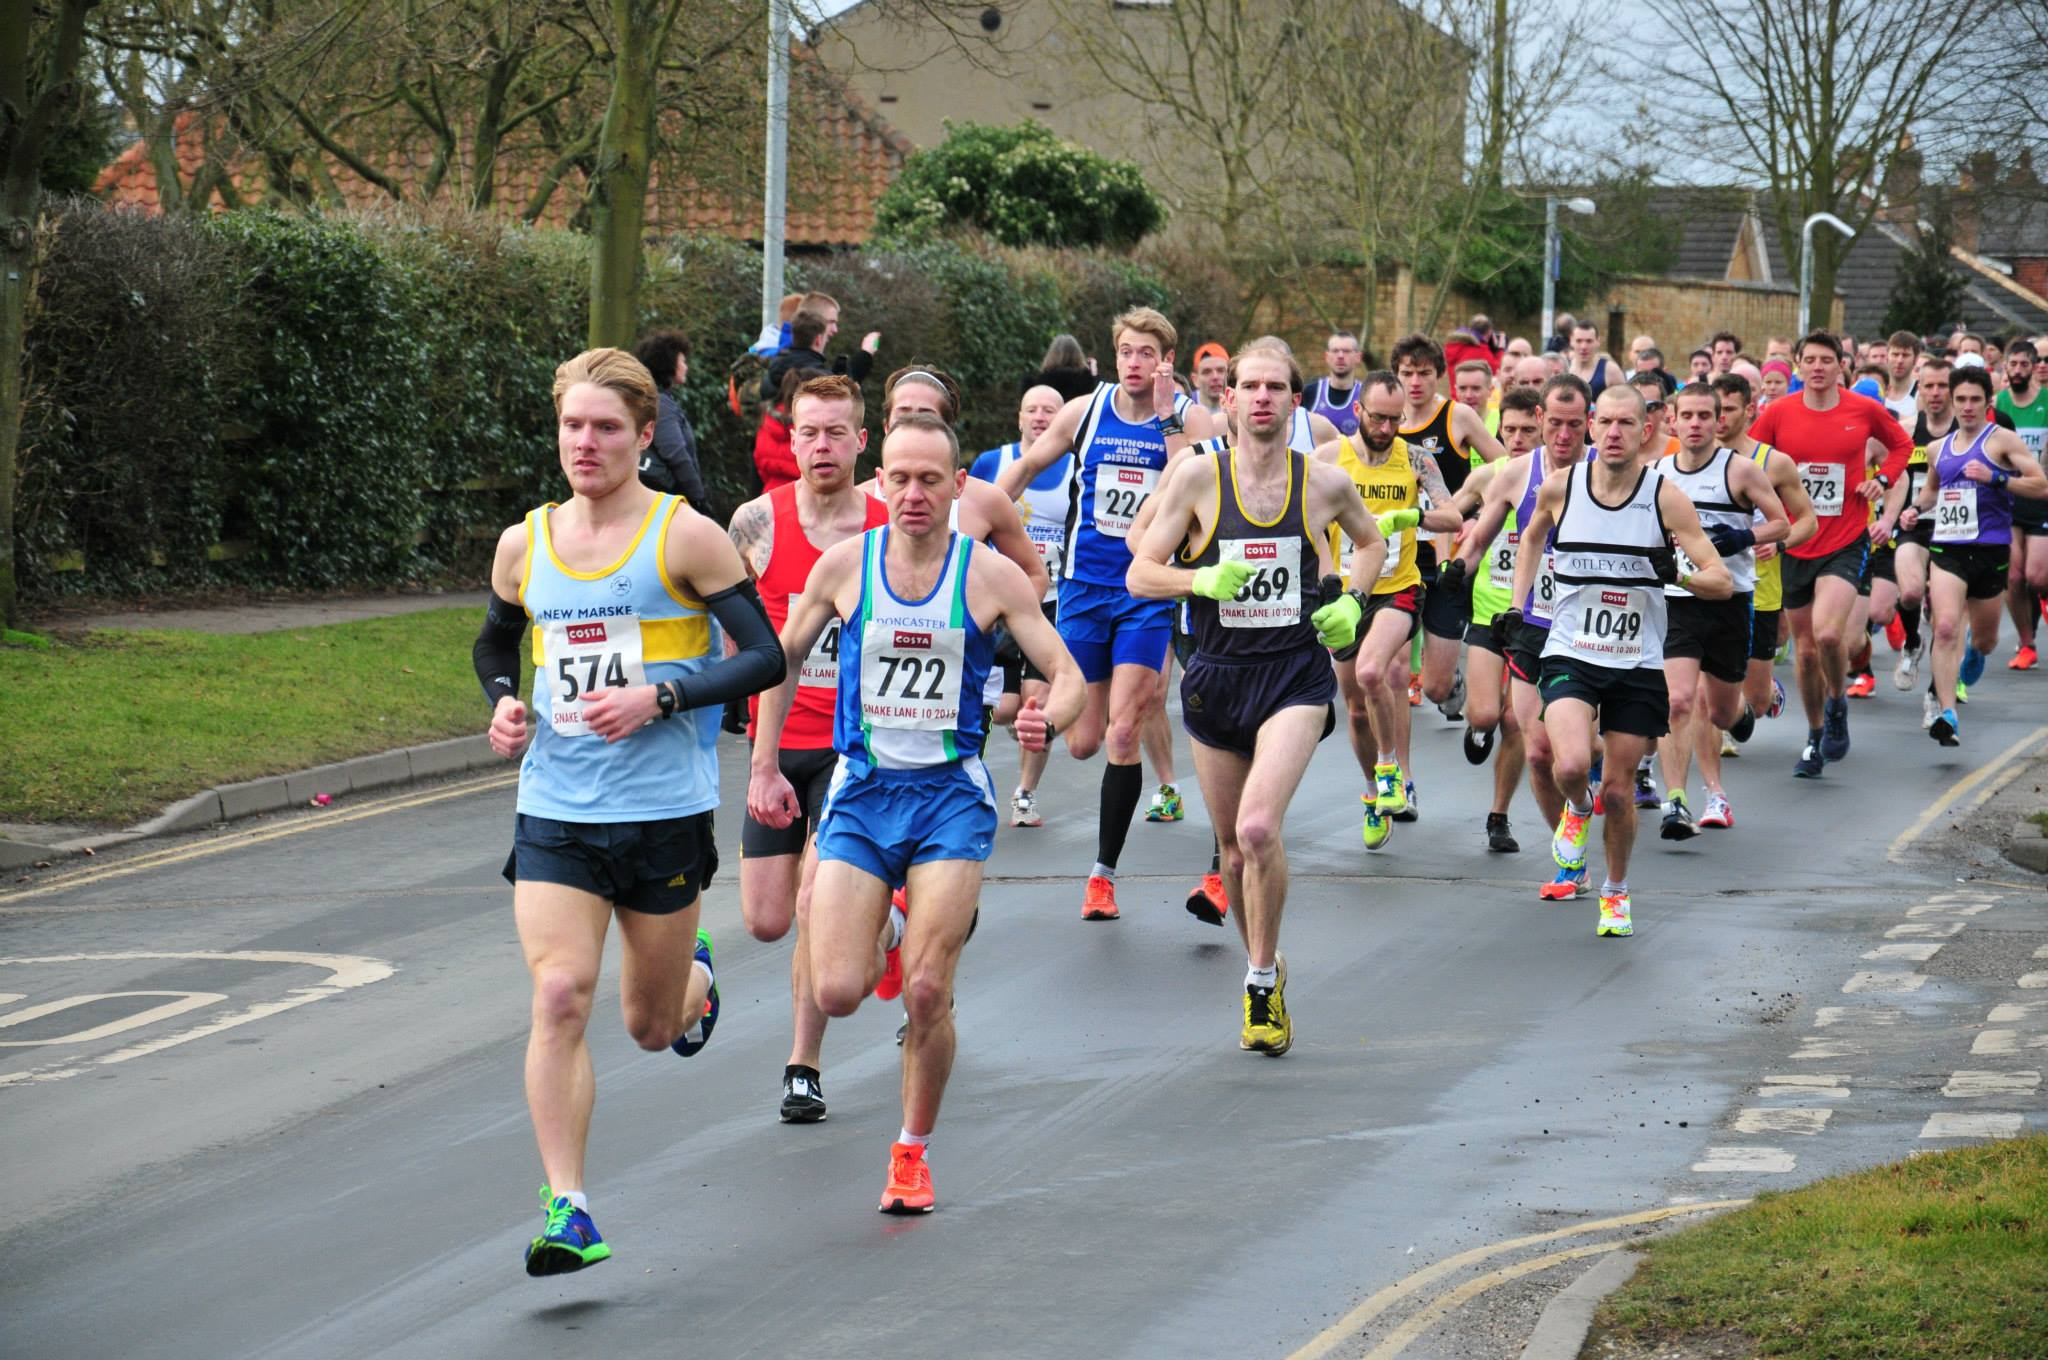 This photo of the 2015 Snake Lane 10 is copyright David Gowans